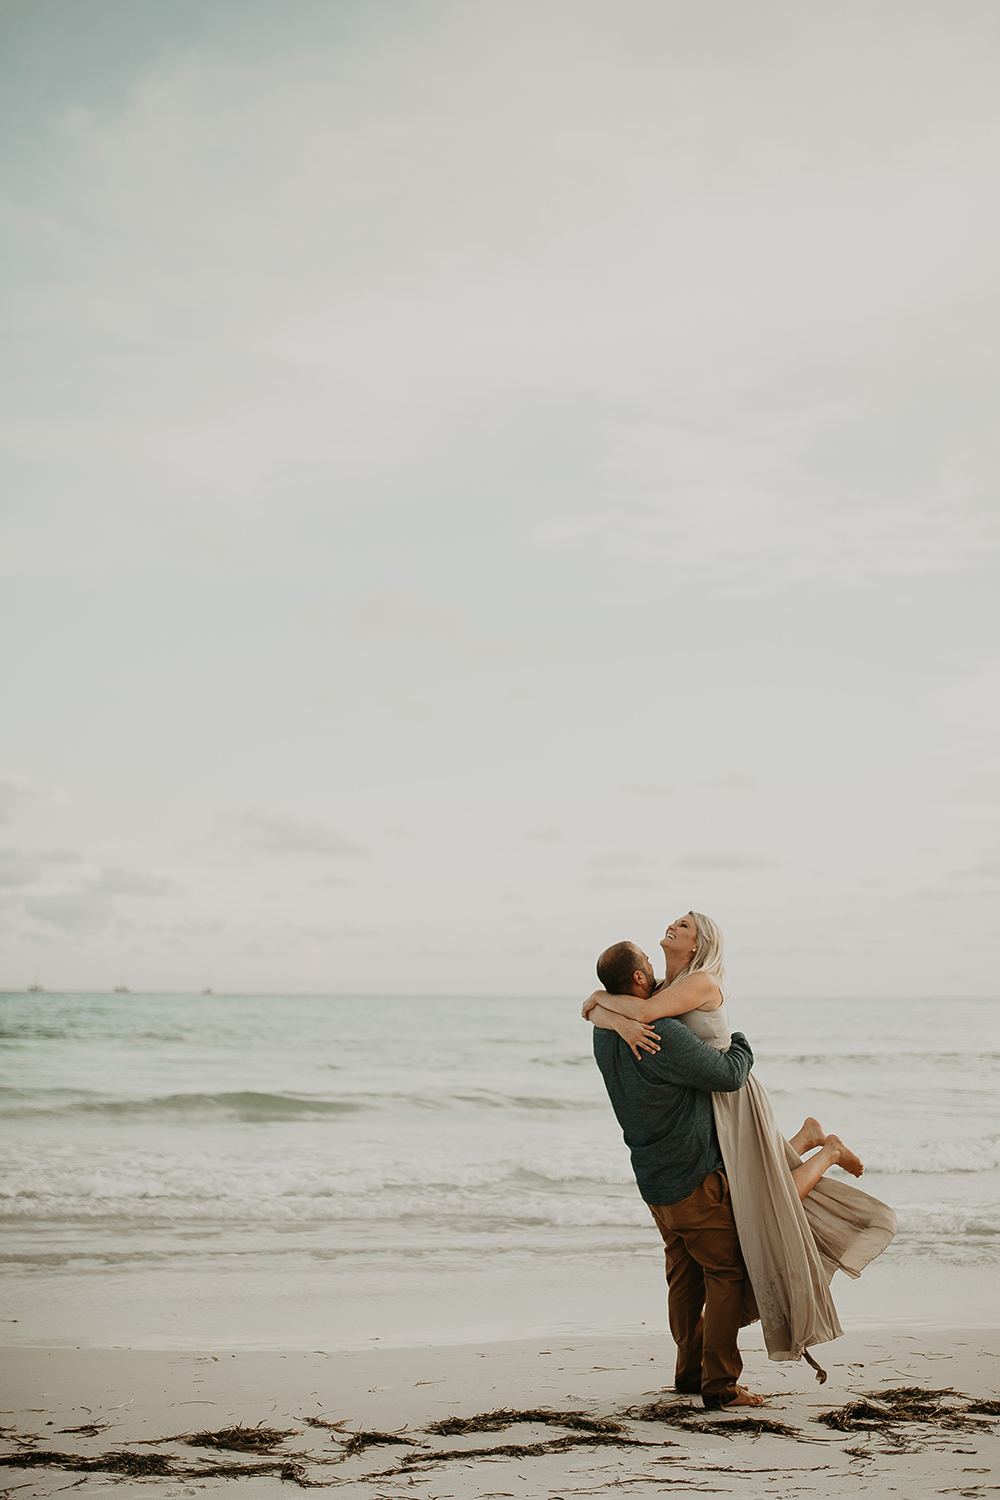 Couple in Love Embracing on the Beach